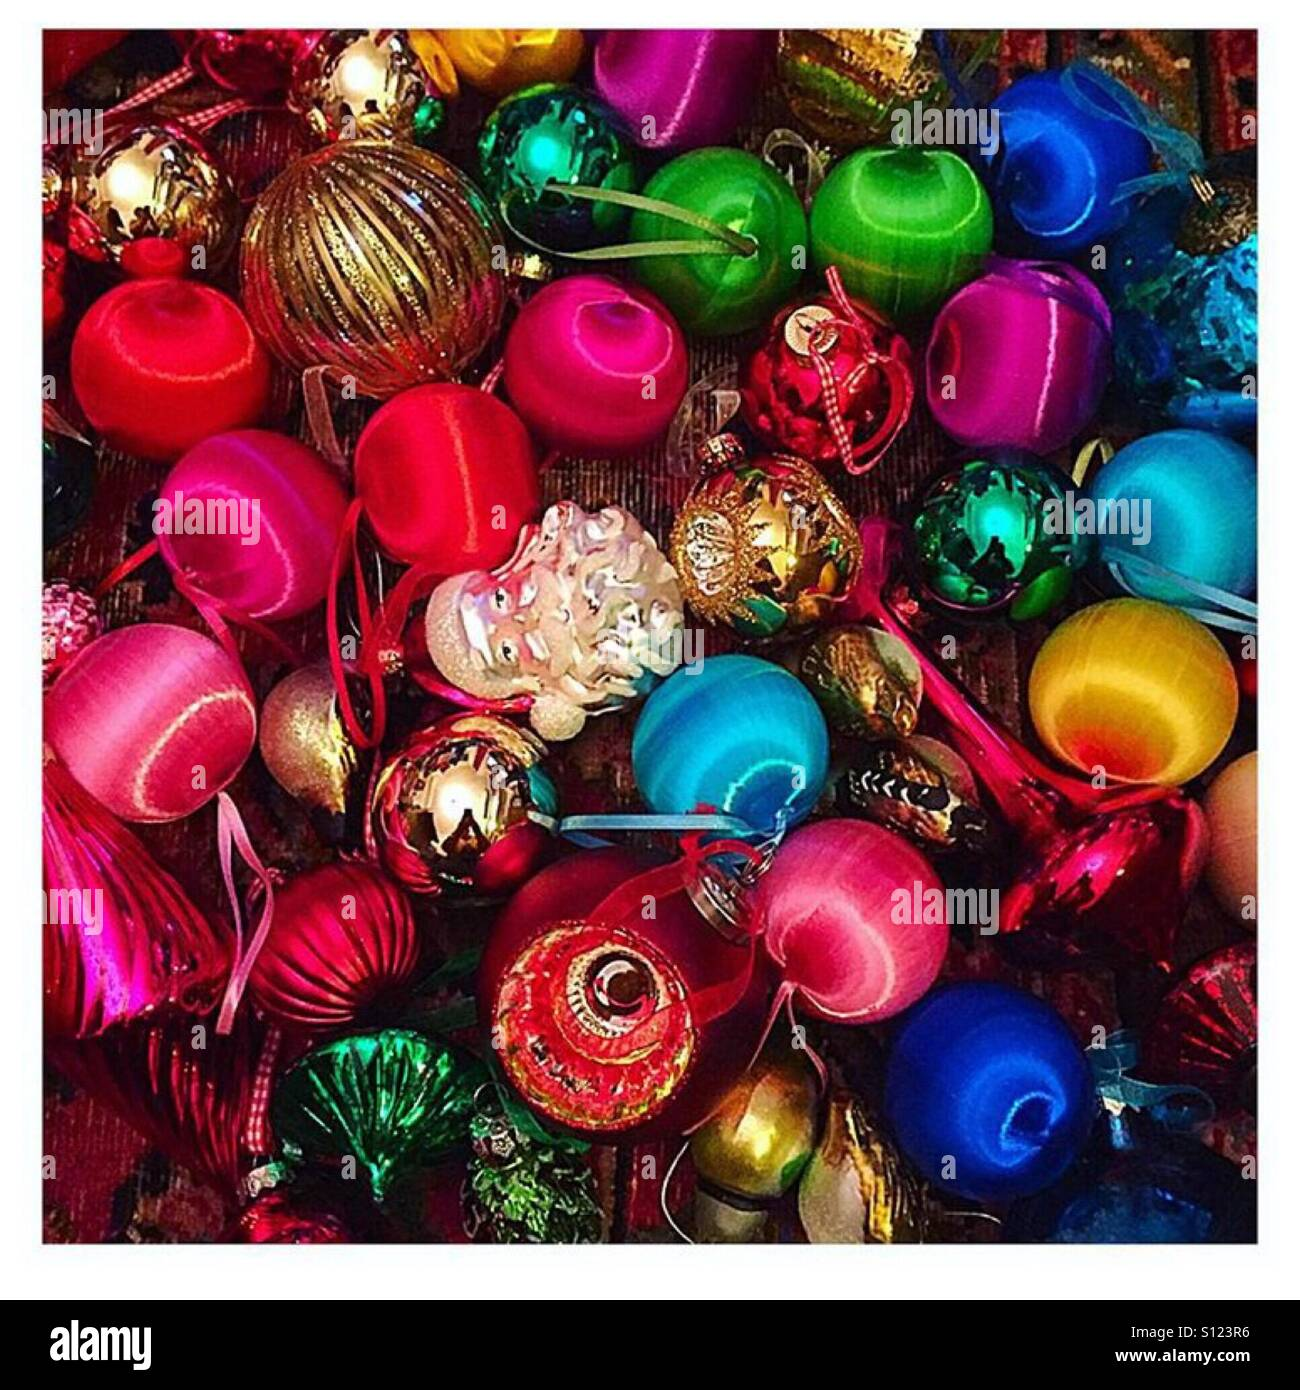 Vintage Christmas Tree Baubles Stock Photo Alamy